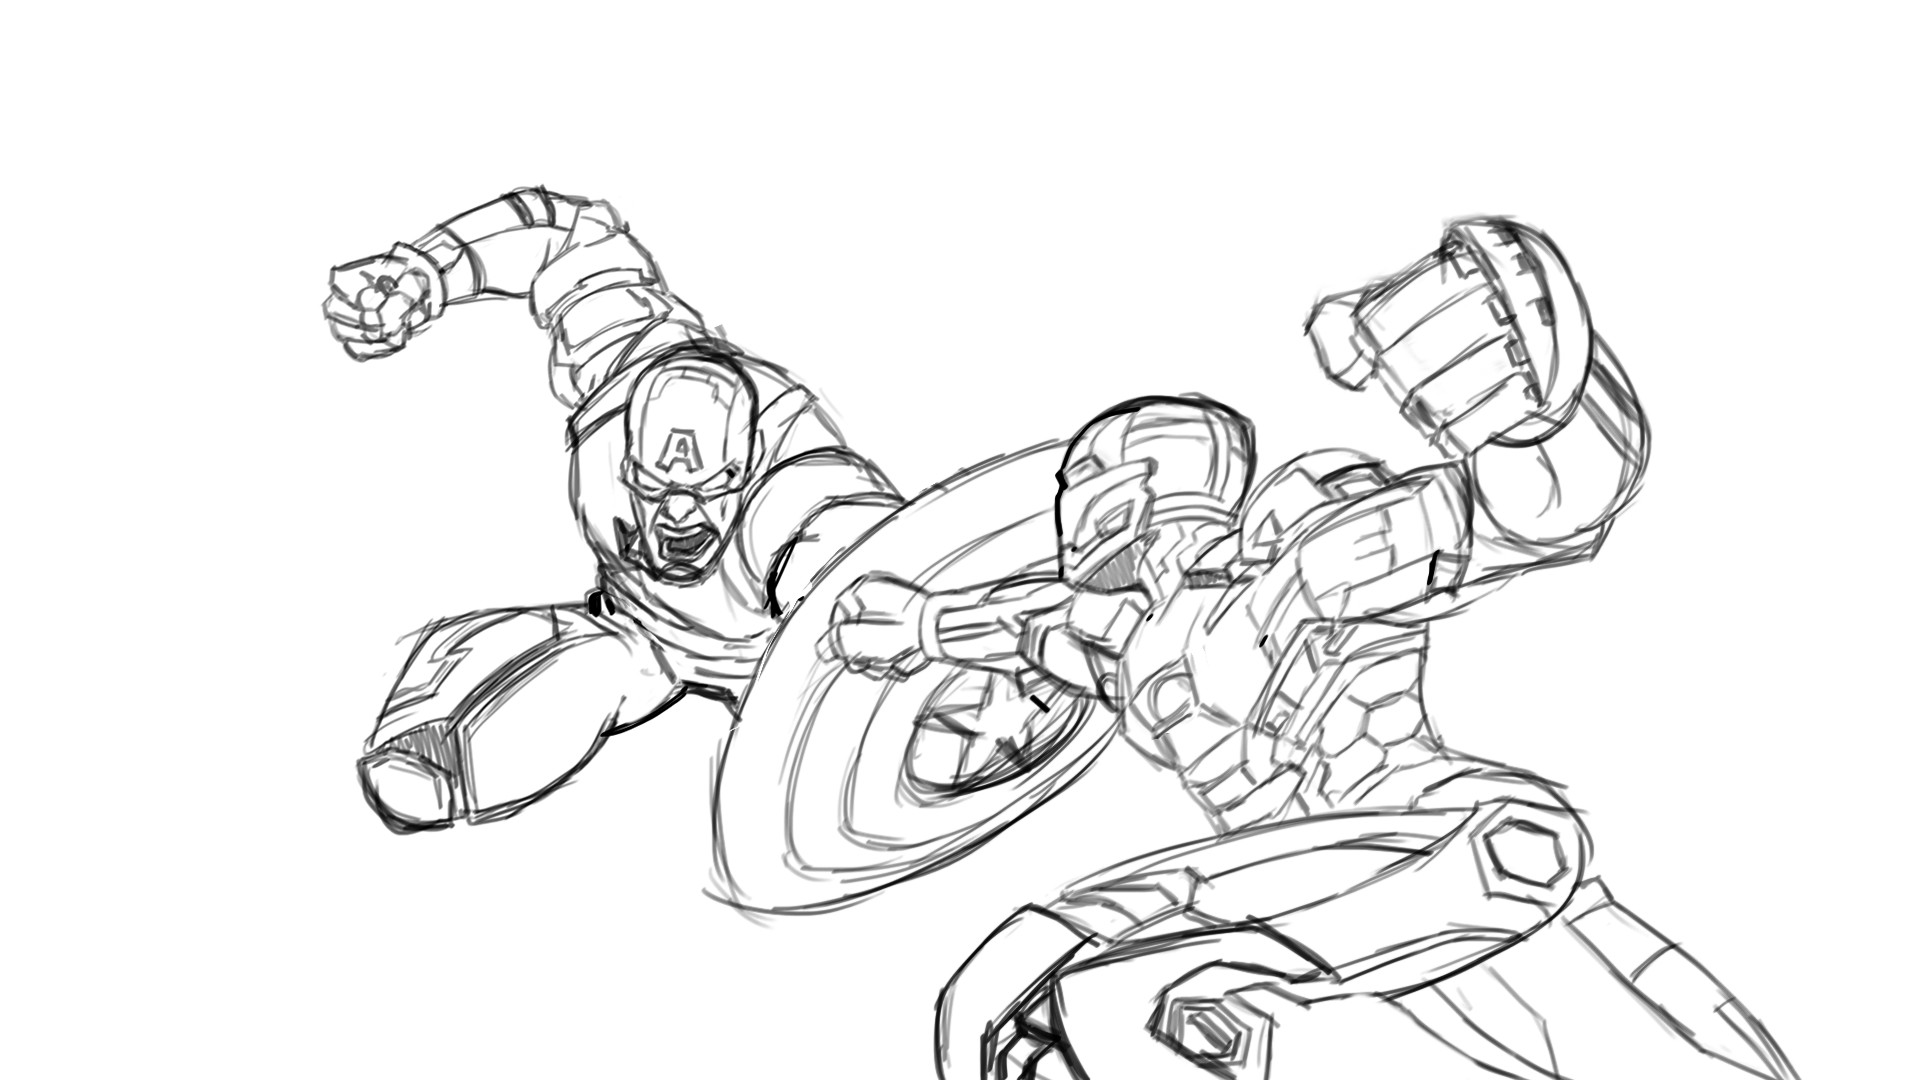 ArtStation - Drawing Iron Man vs Captain America Part 1 (Sketch ...